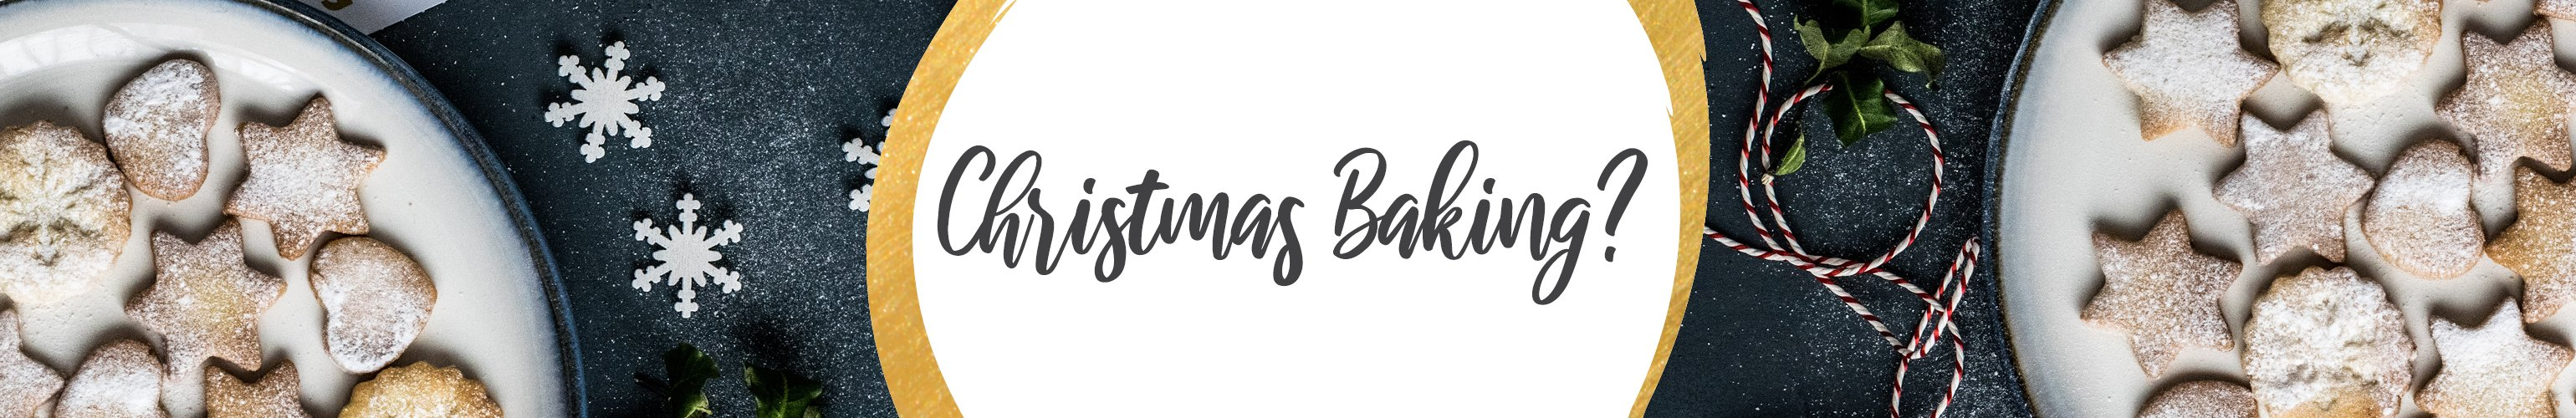 Shop Baking for Christmas